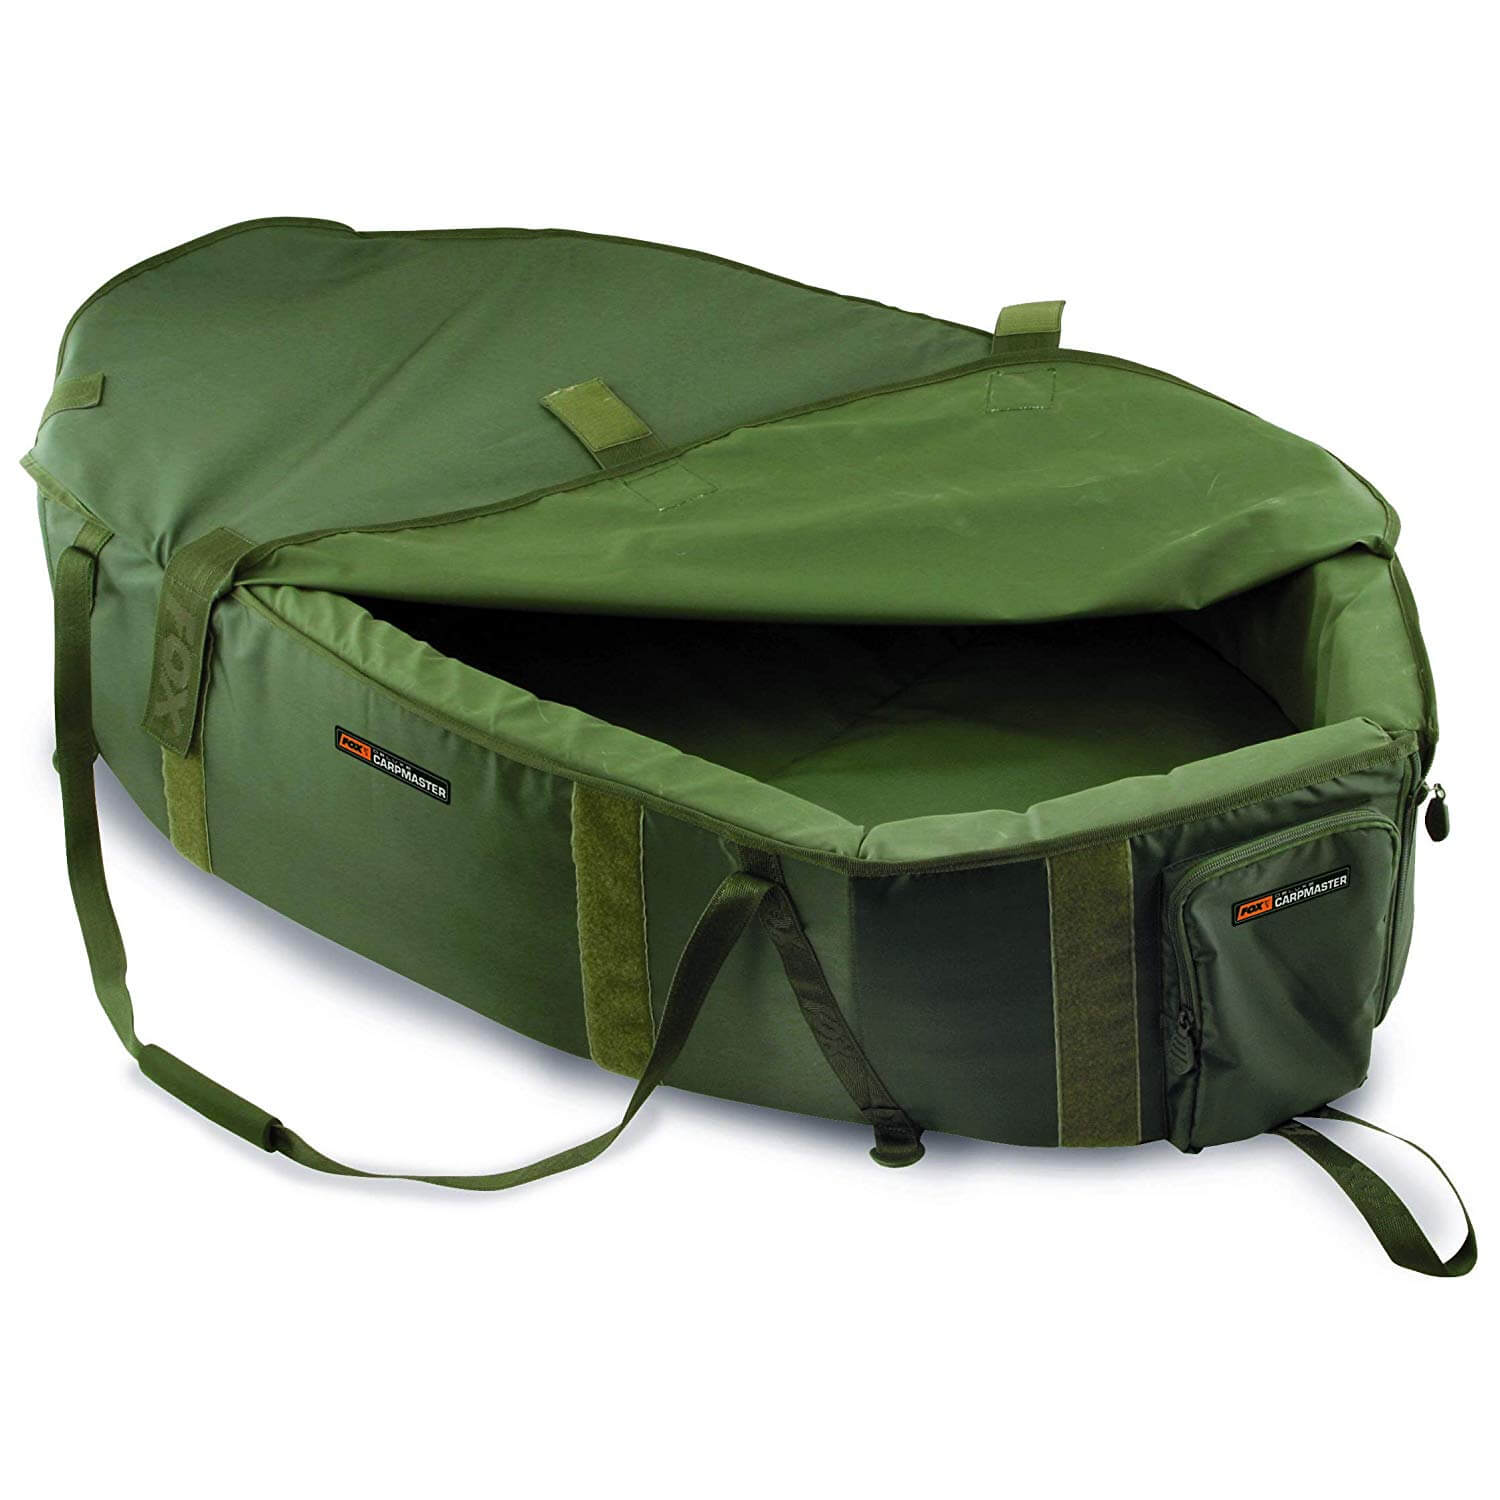 fox carpmaster unhooking mat